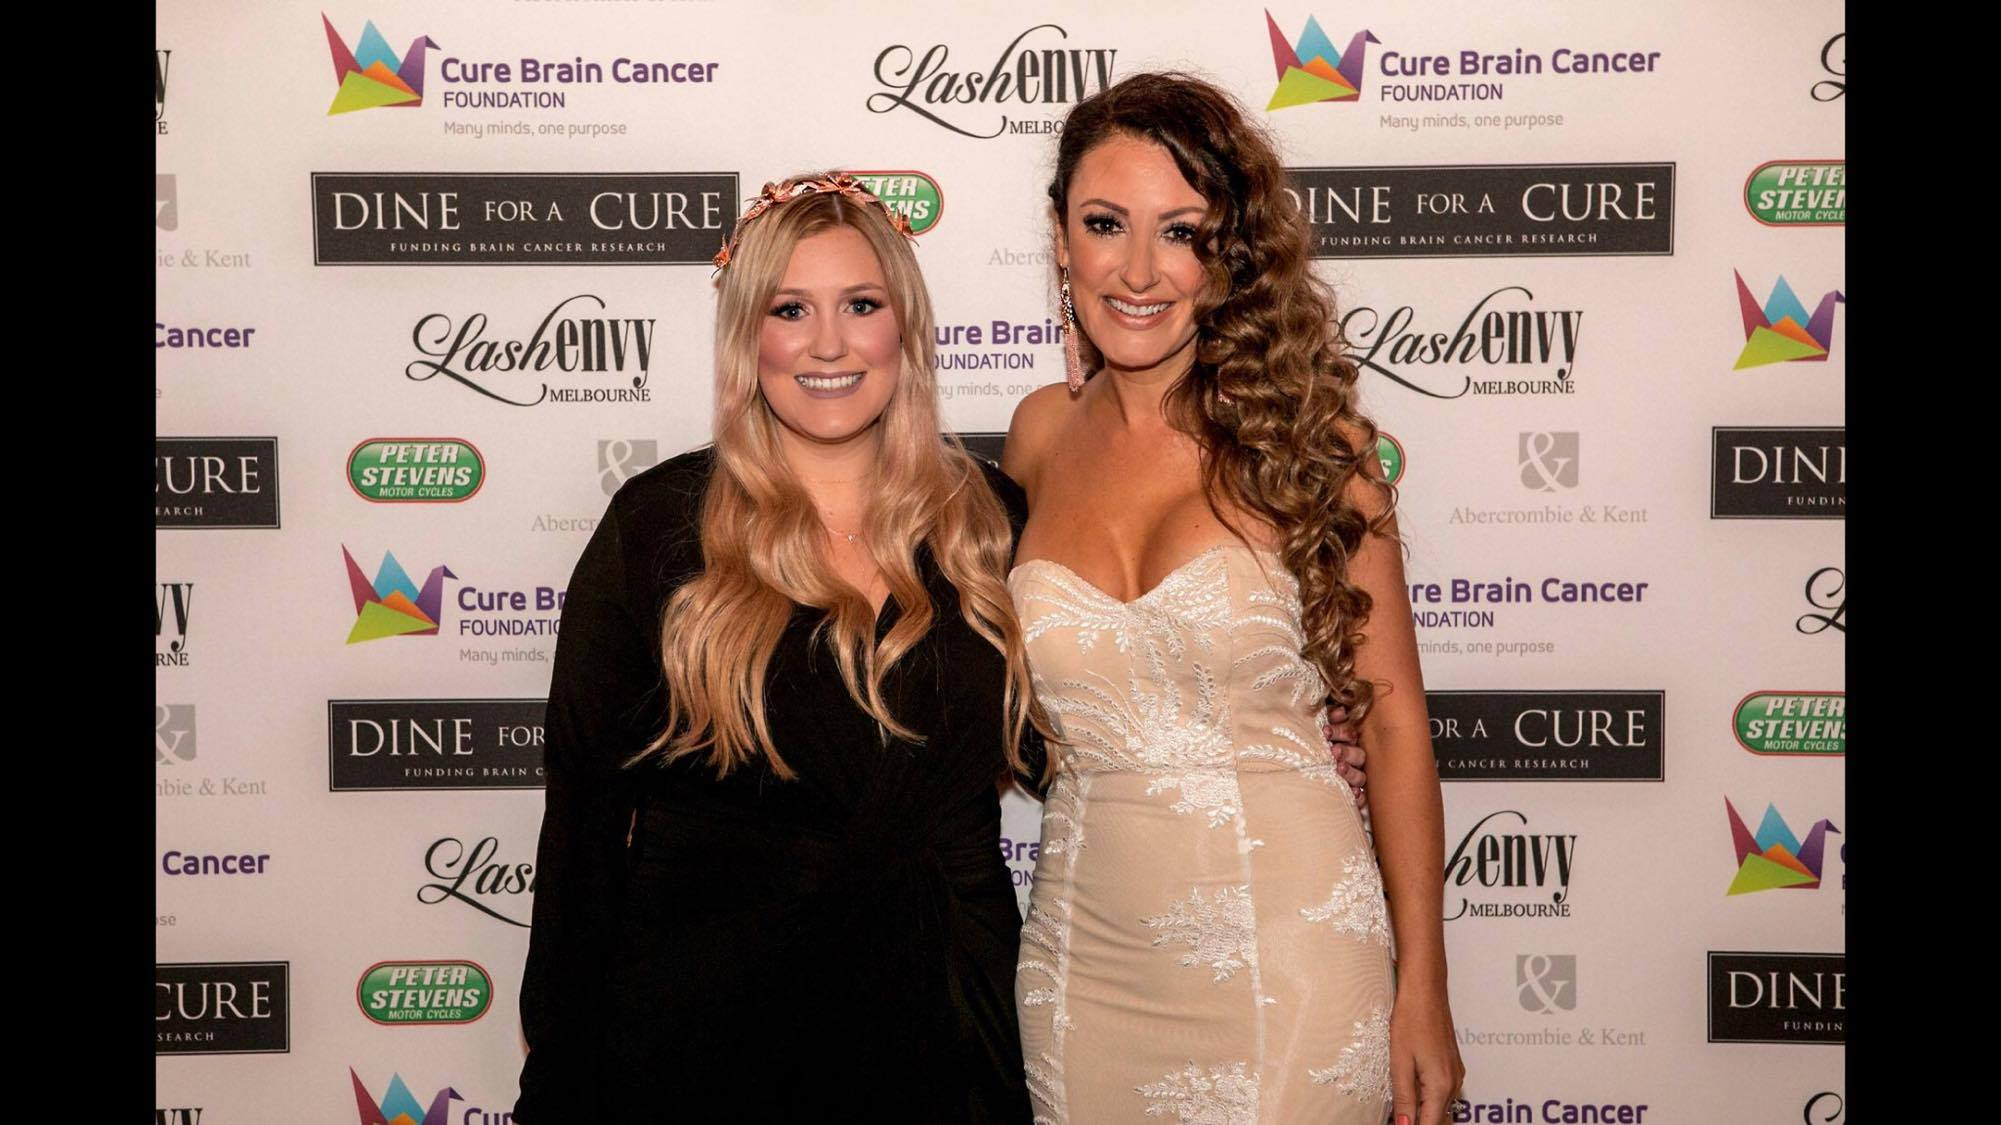 Dine for a Cure 2